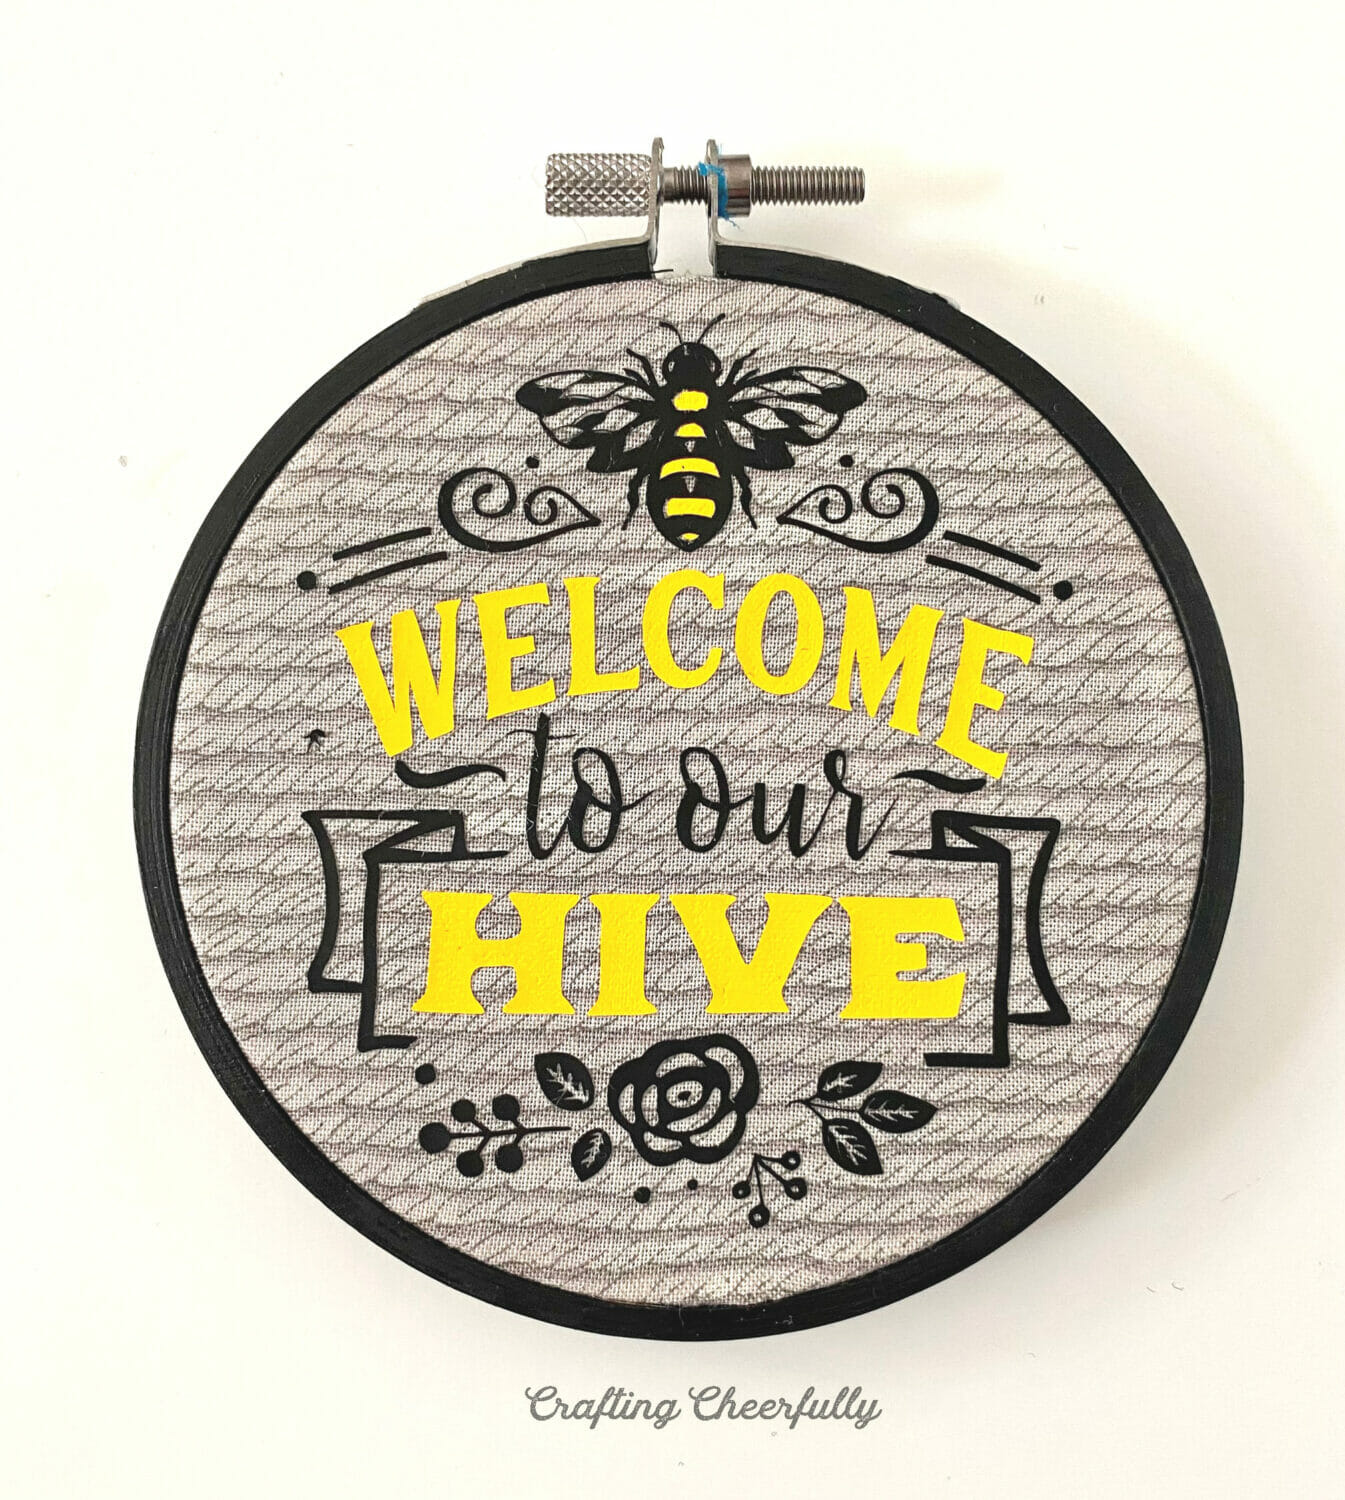 Embroidery hoop with bee image applied to the fabric.